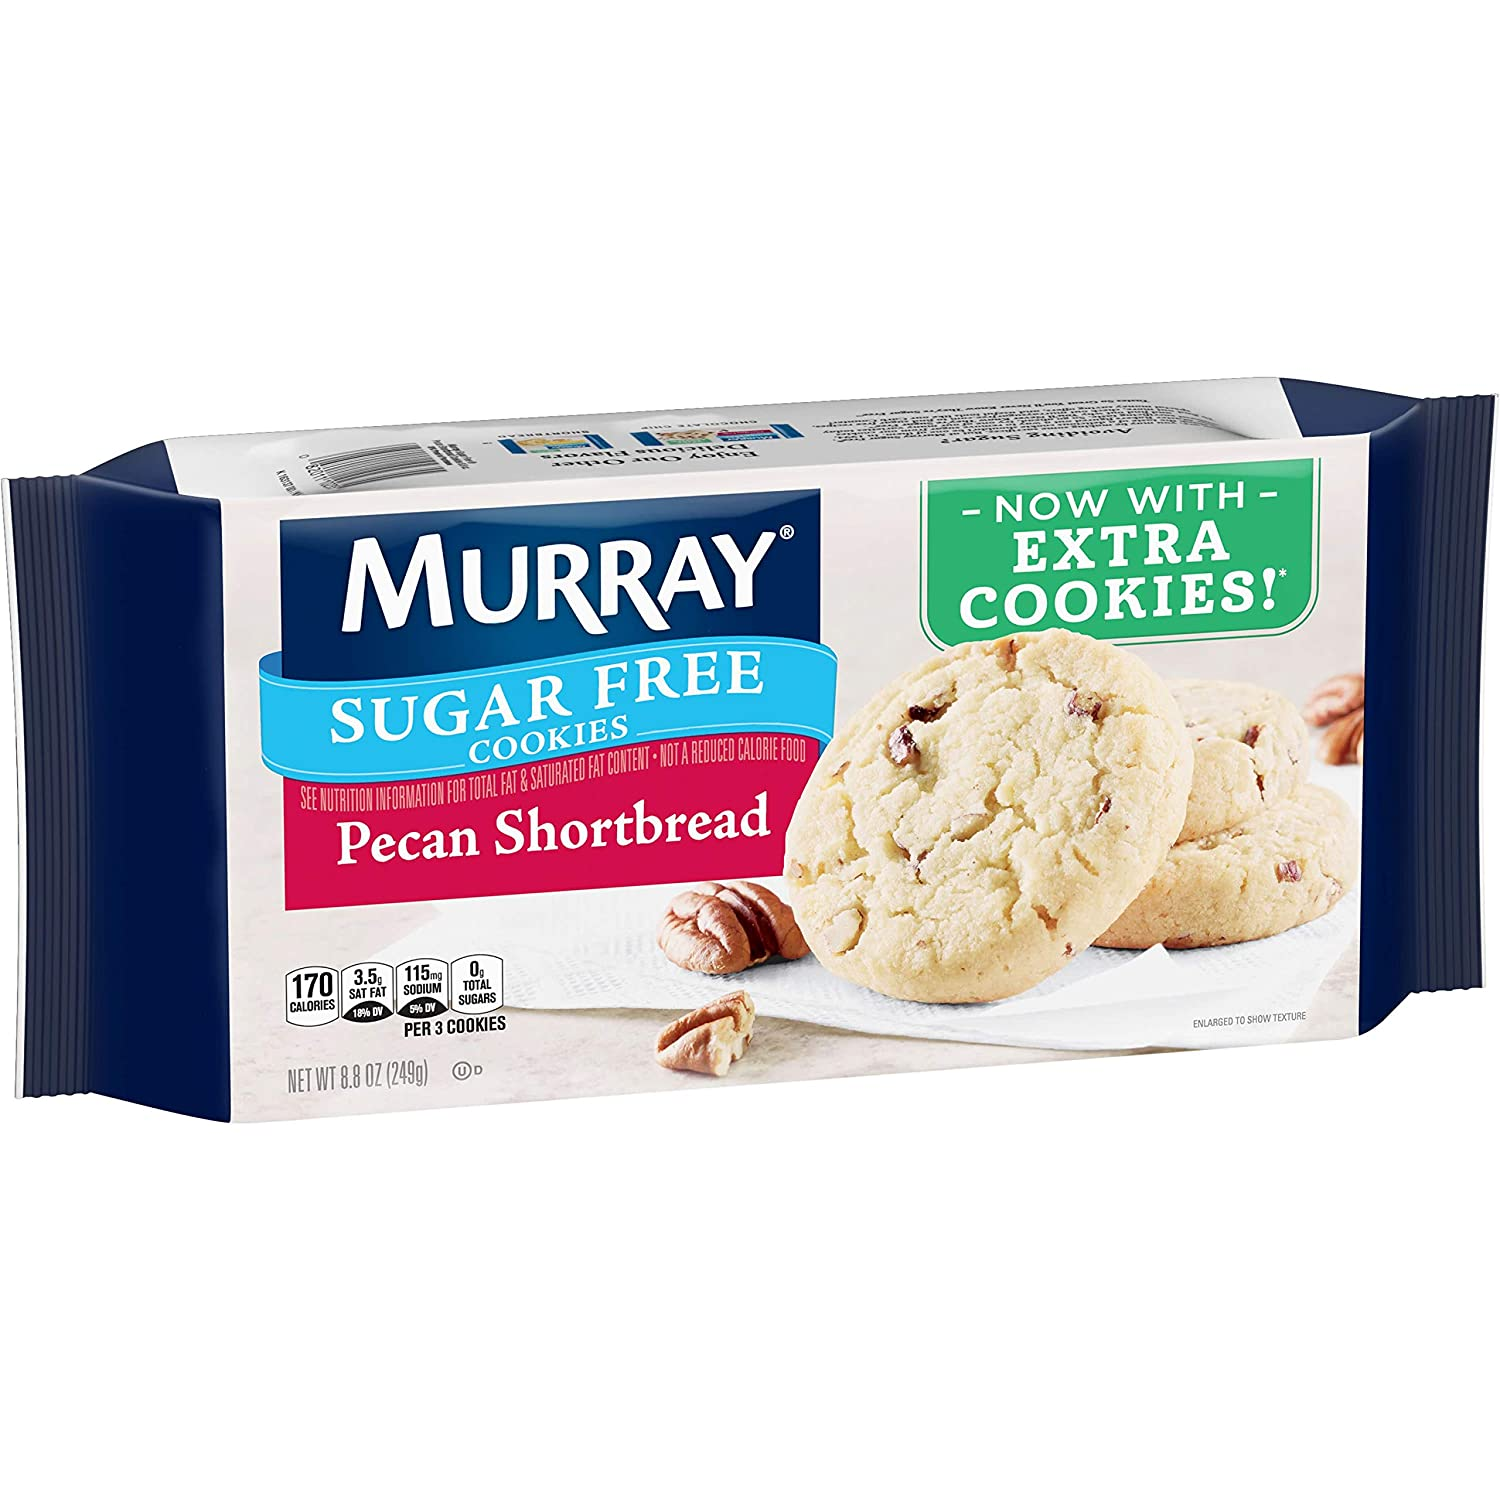 Murray Sugar Free Cookies, Pecan Shortbread, 8.8 Ounce Tray, Pack of 12